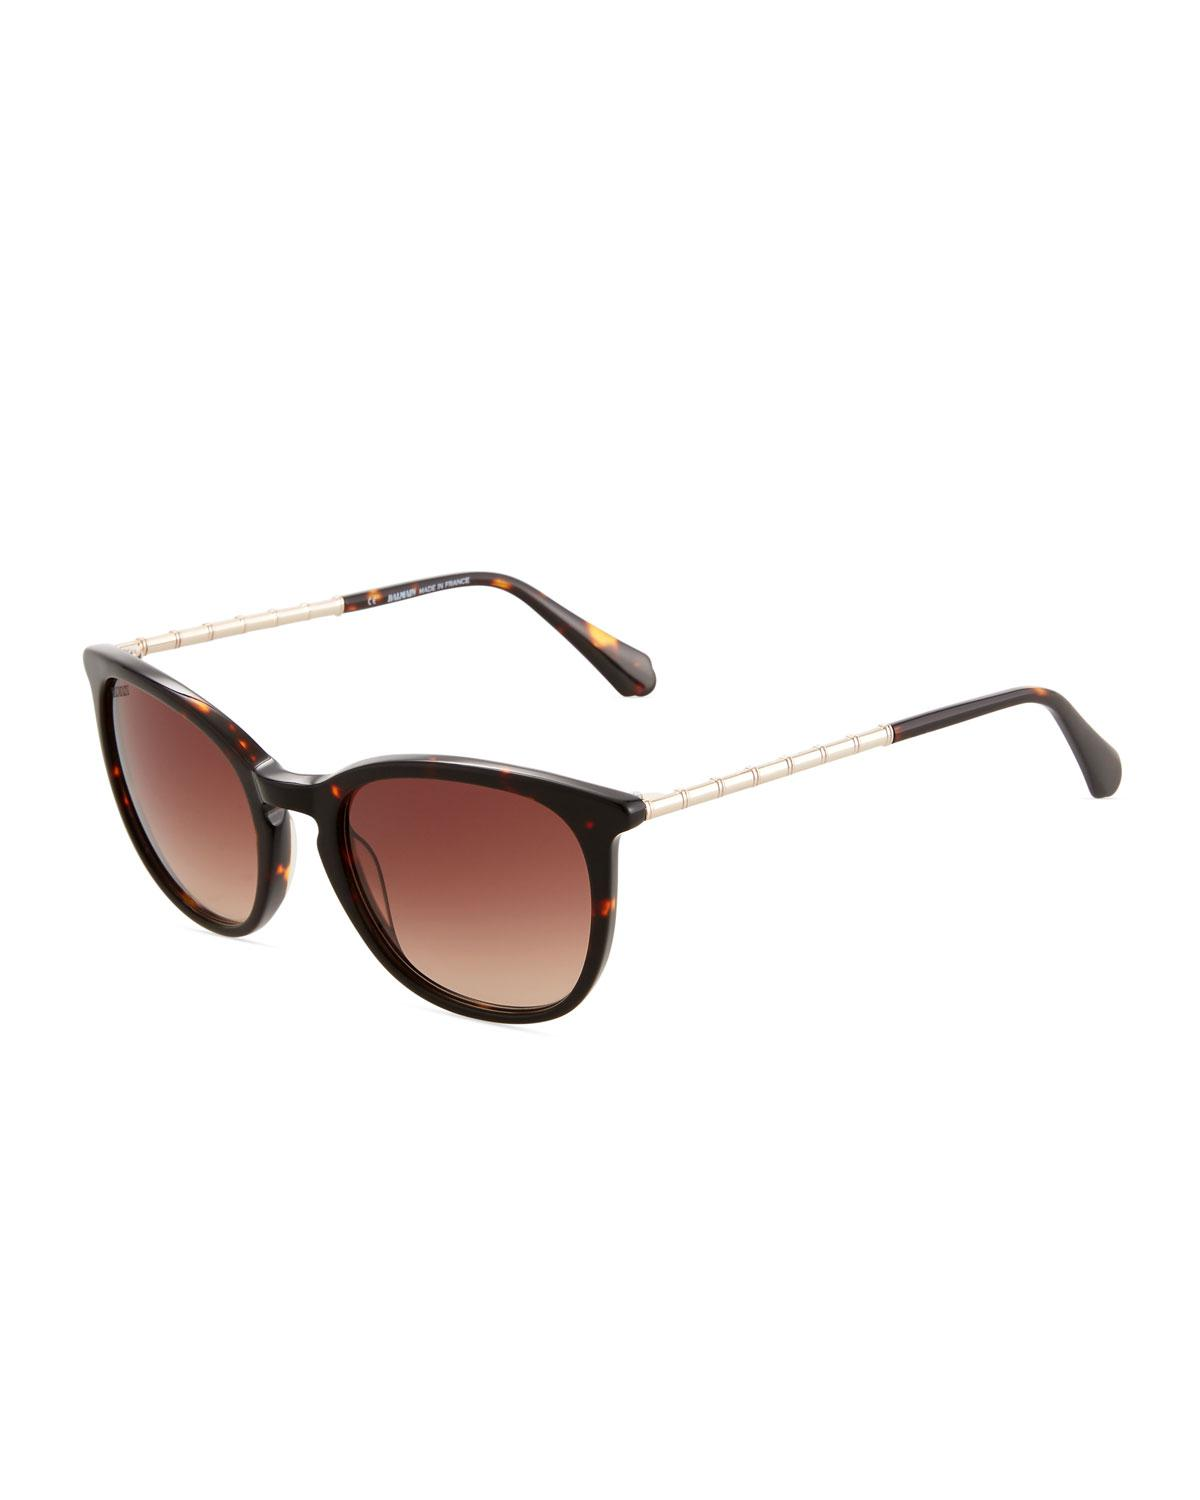 4c07dc59d6 Lyst - Balmain Round Tortoiseshell Acetate metal Sunglasses in Brown